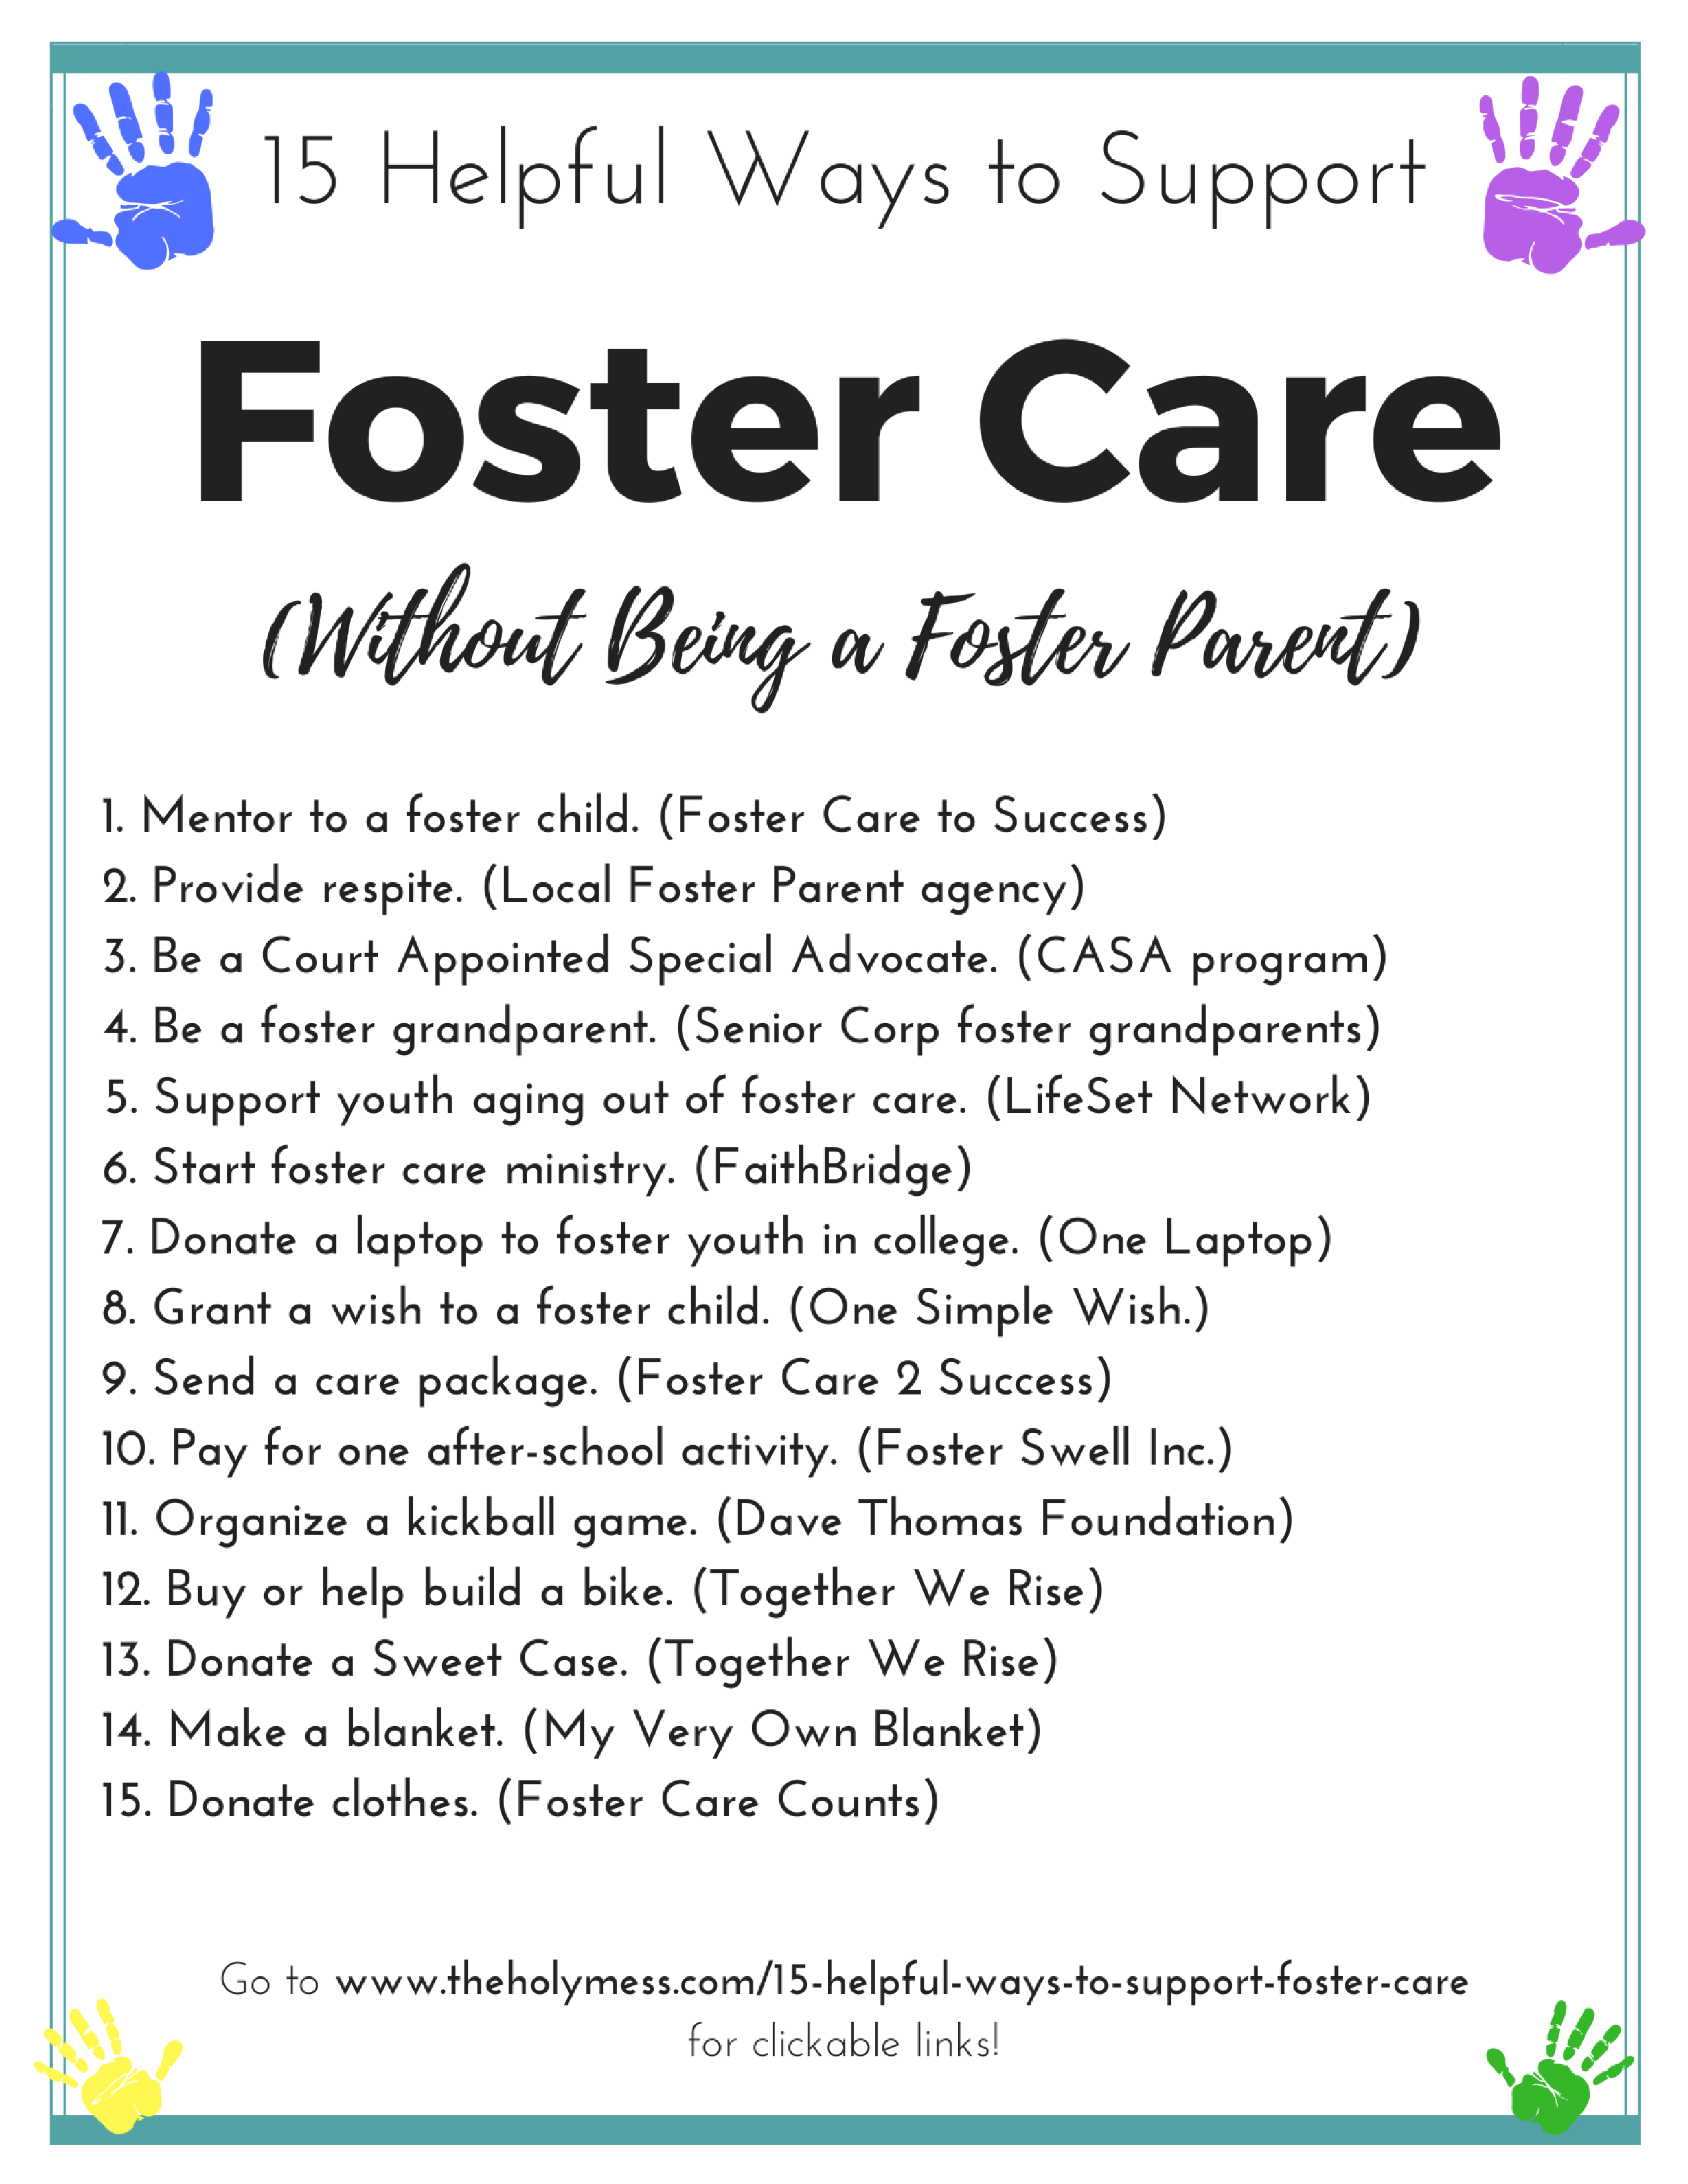 15 Ways to Support Foster Care Without Being Foster Parents